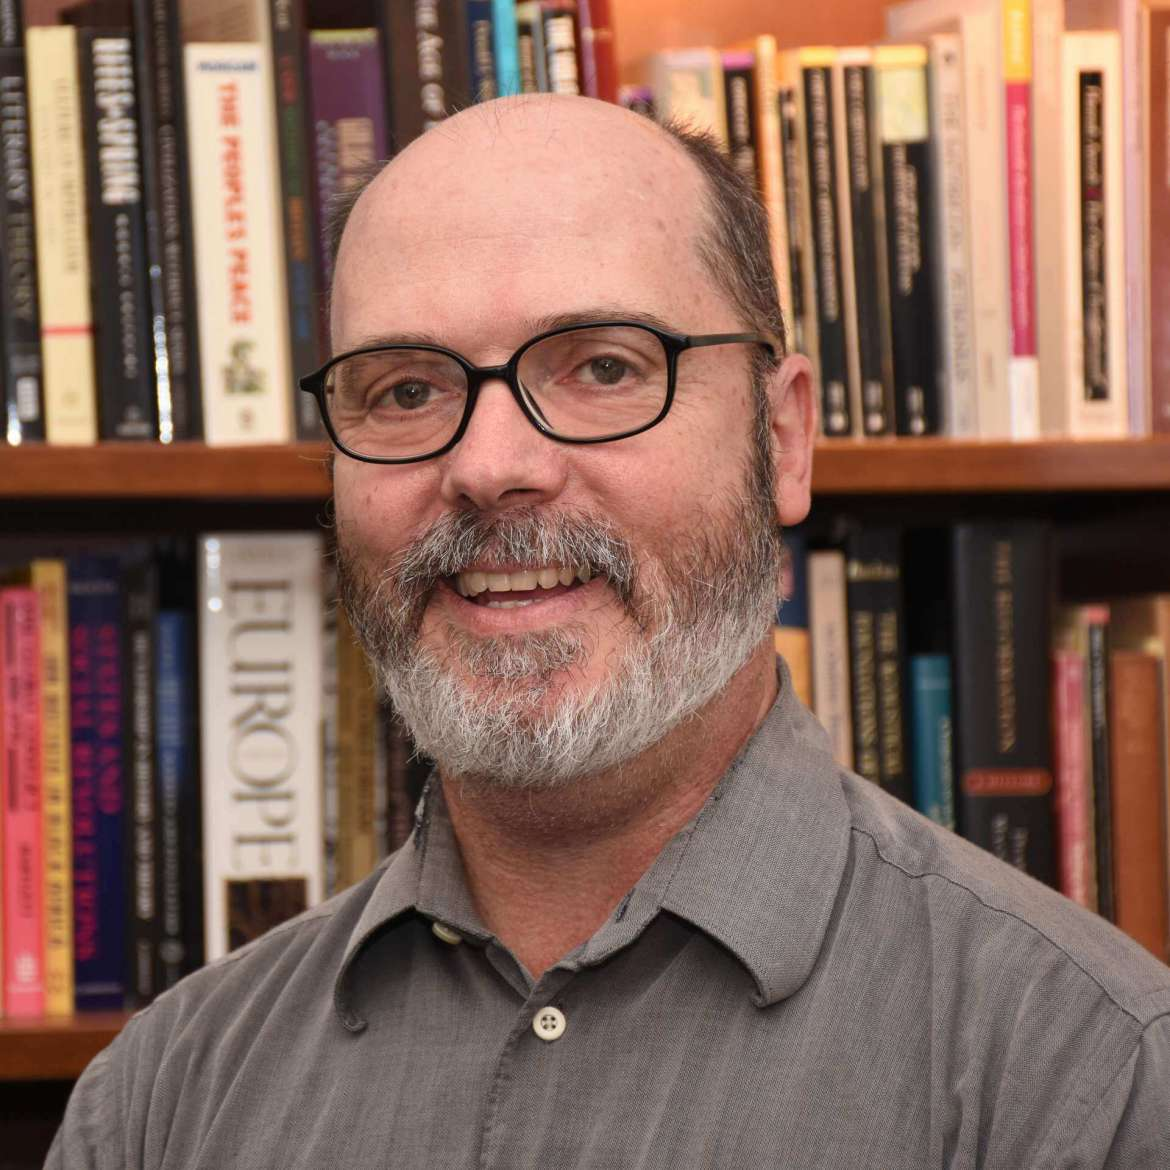 Dr. Keith Alexander, associate professor of history